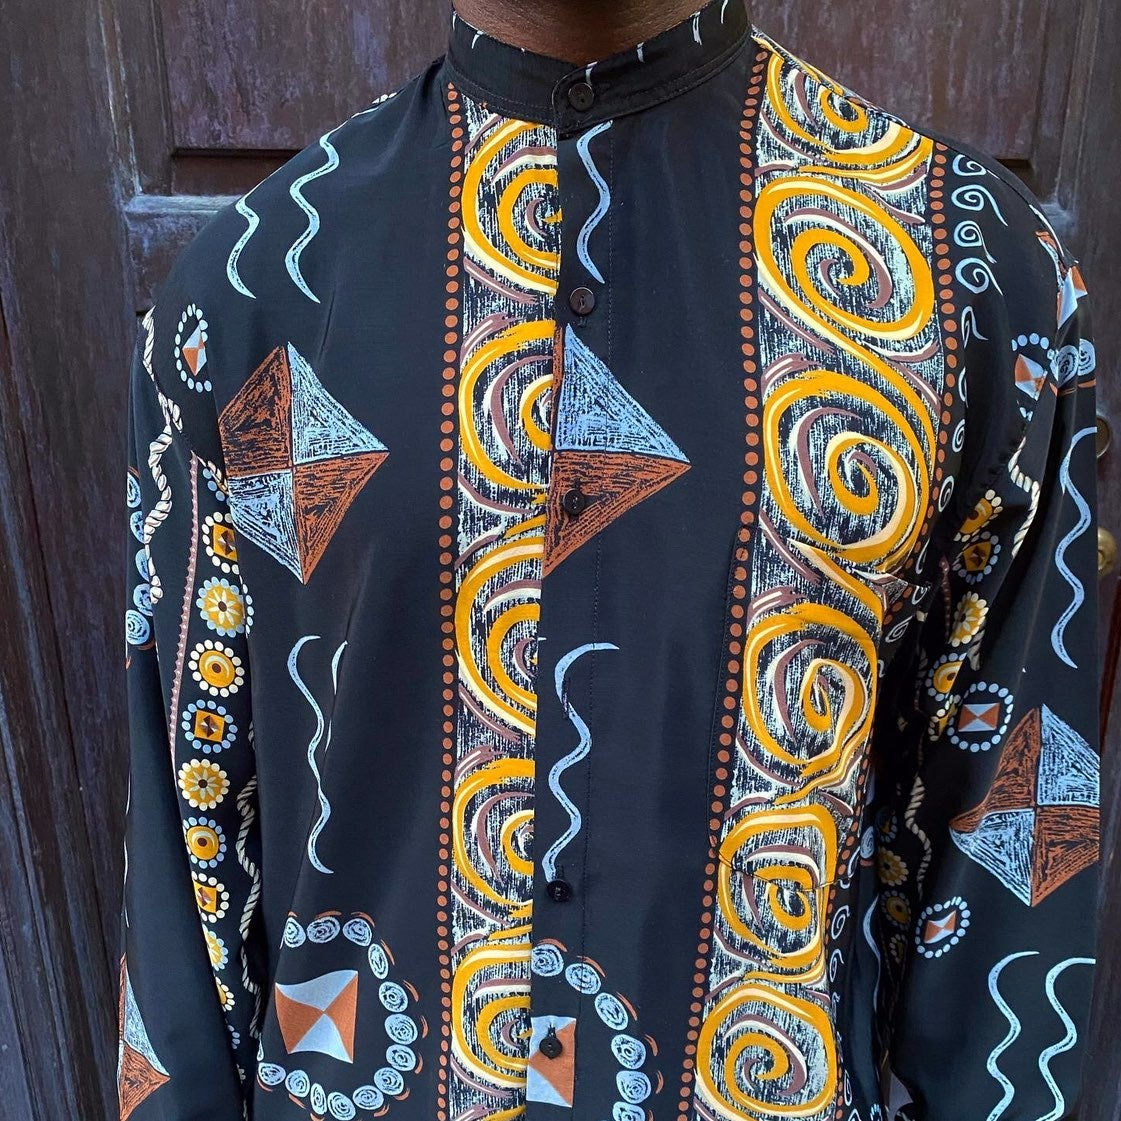 Vintage Batchi Uomo Abstract Button Up